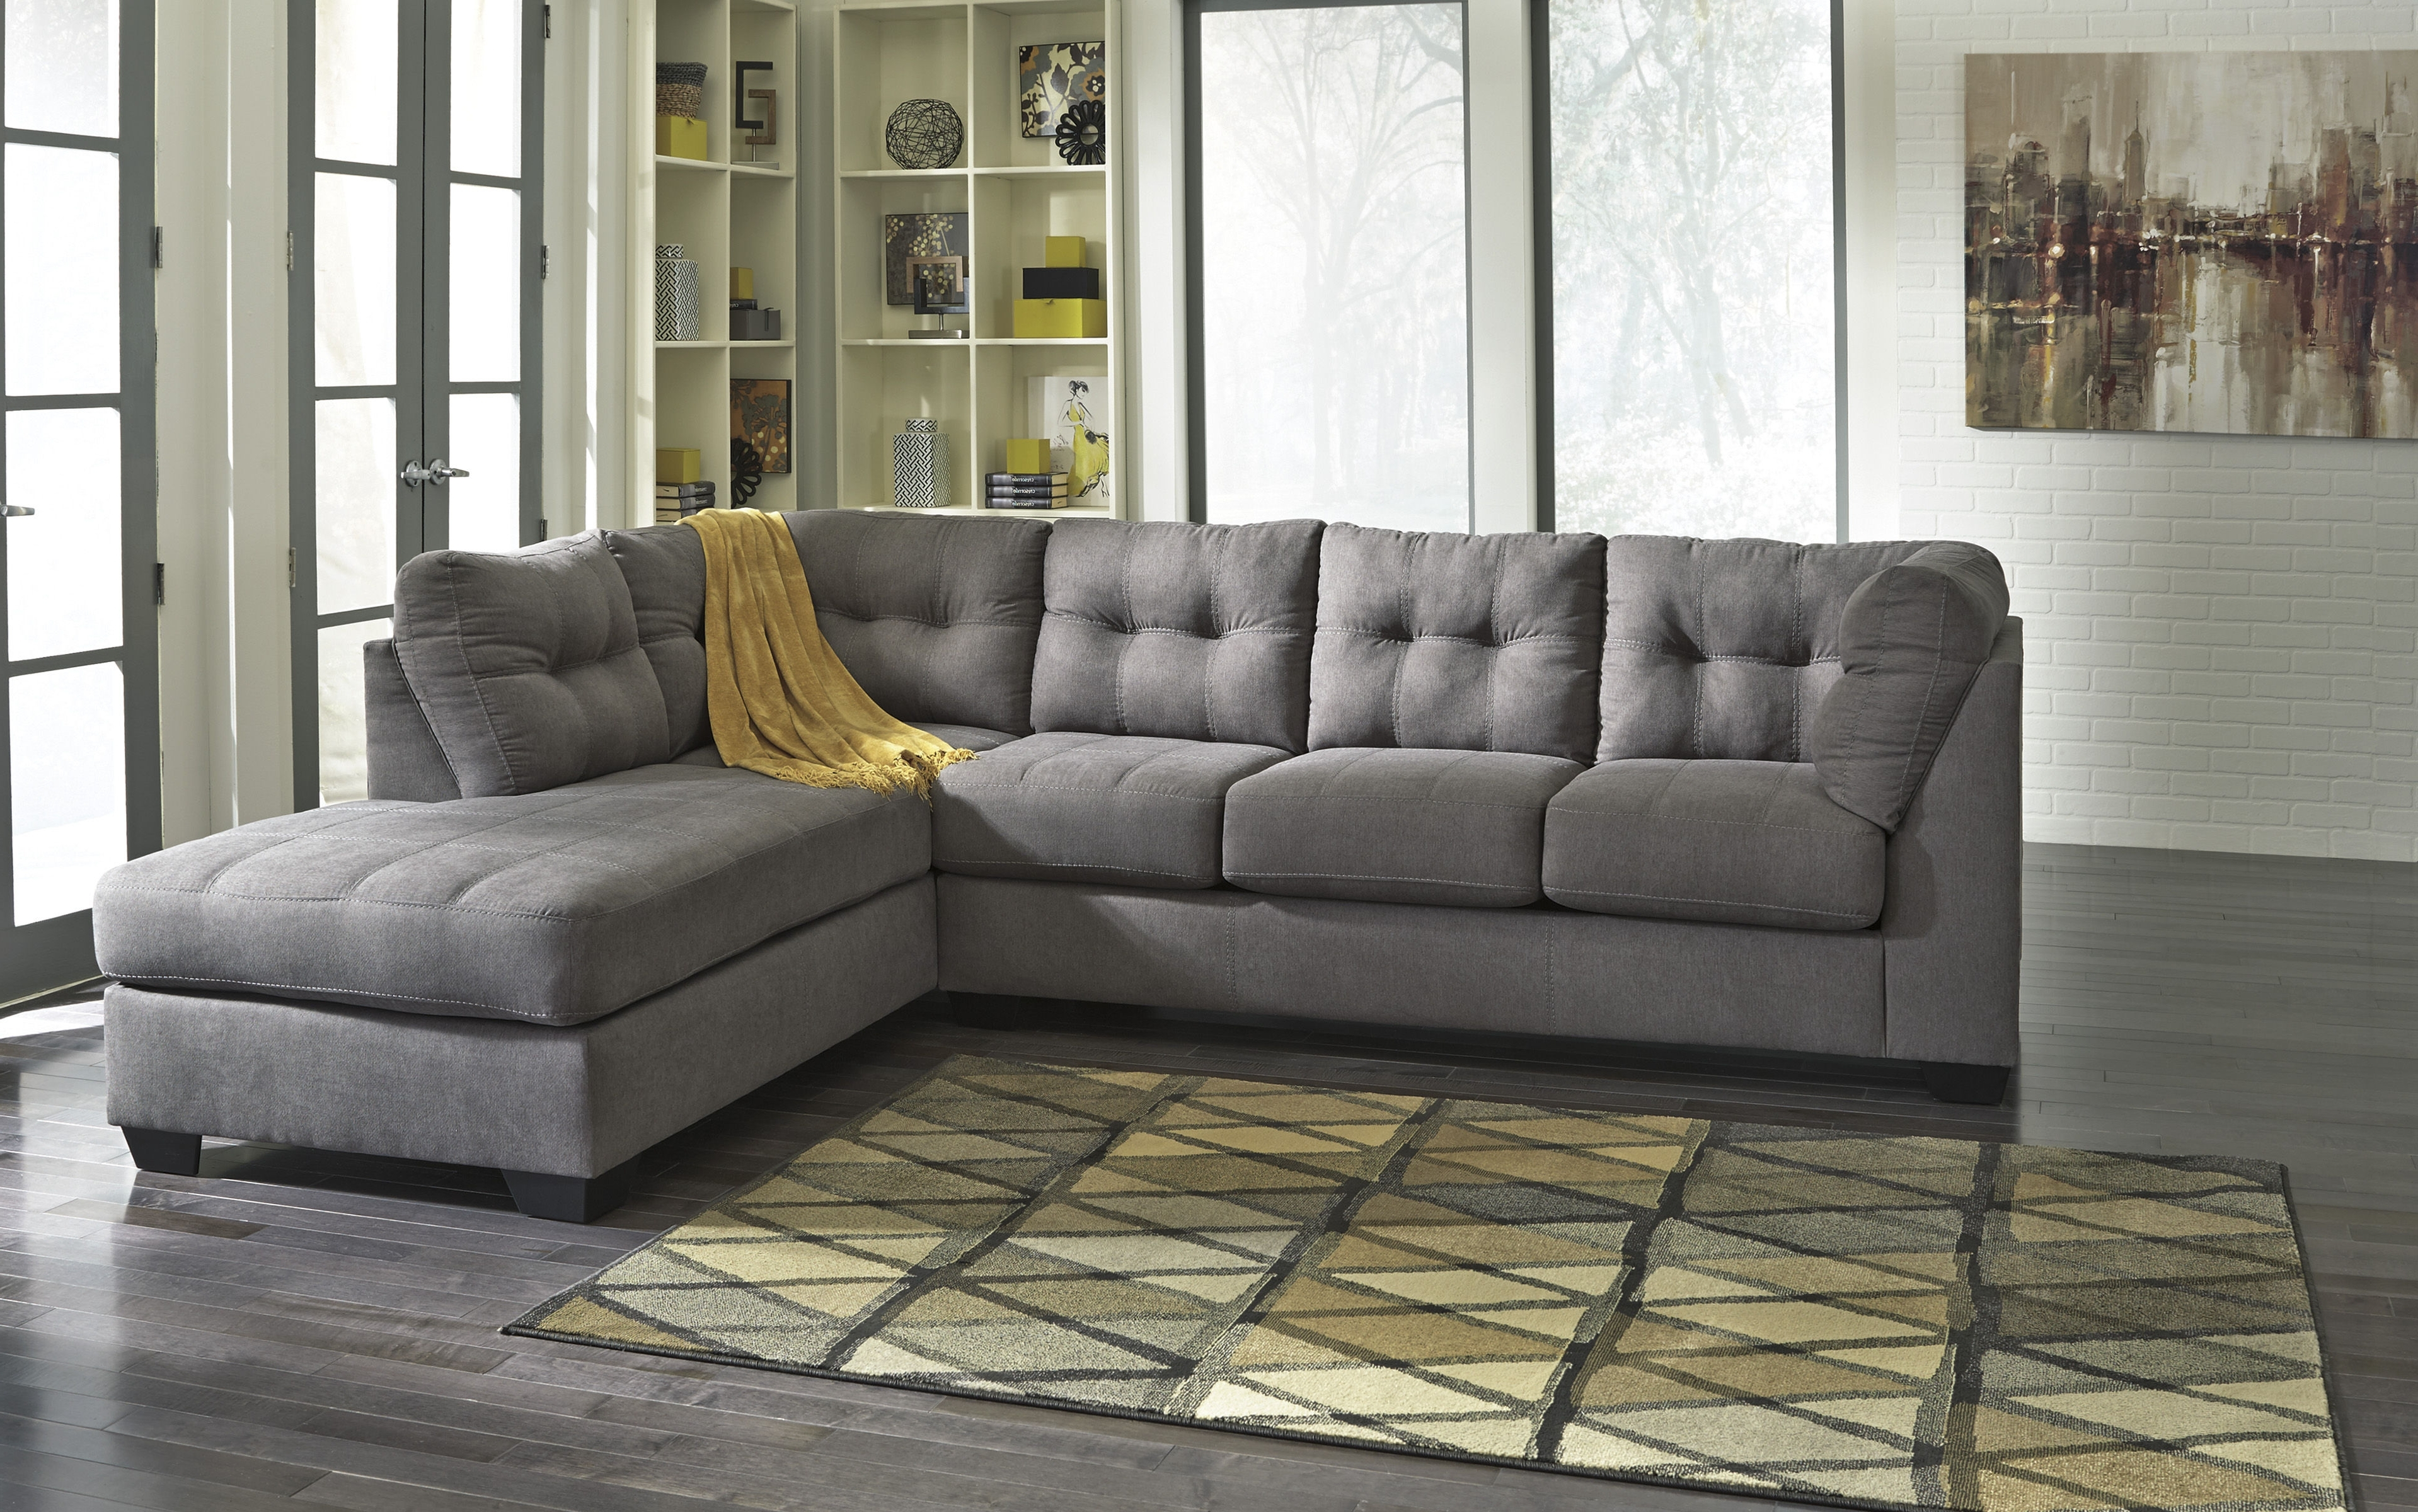 Most Recent Right Facing Chaise Sectionals With Regard To Ashley Furniture Maier Charcoal Raf Chaise Sectional (View 6 of 15)